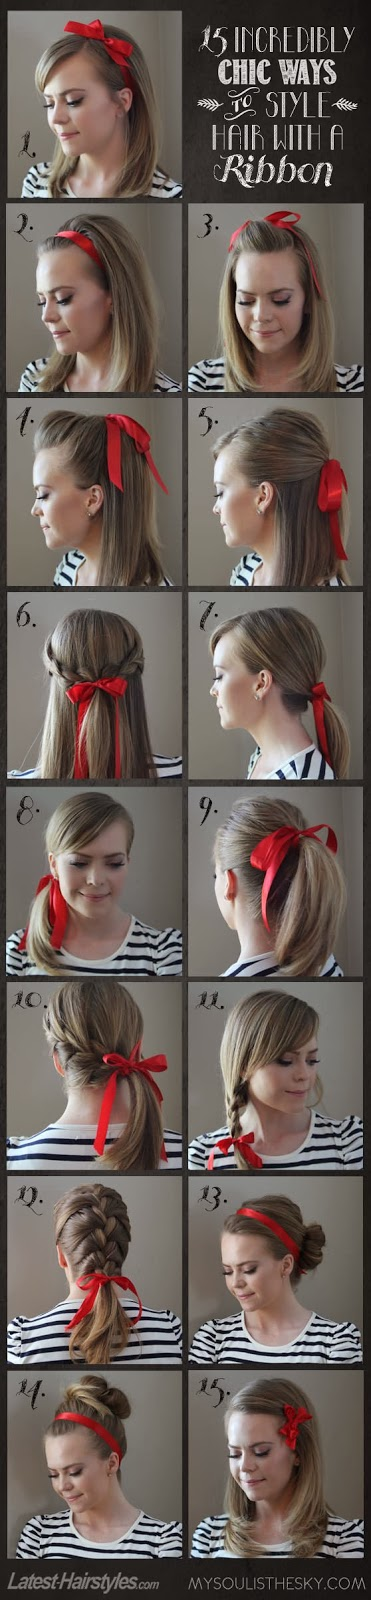 15 Incredibly Chic Ways to Style Hair With a Ribbon